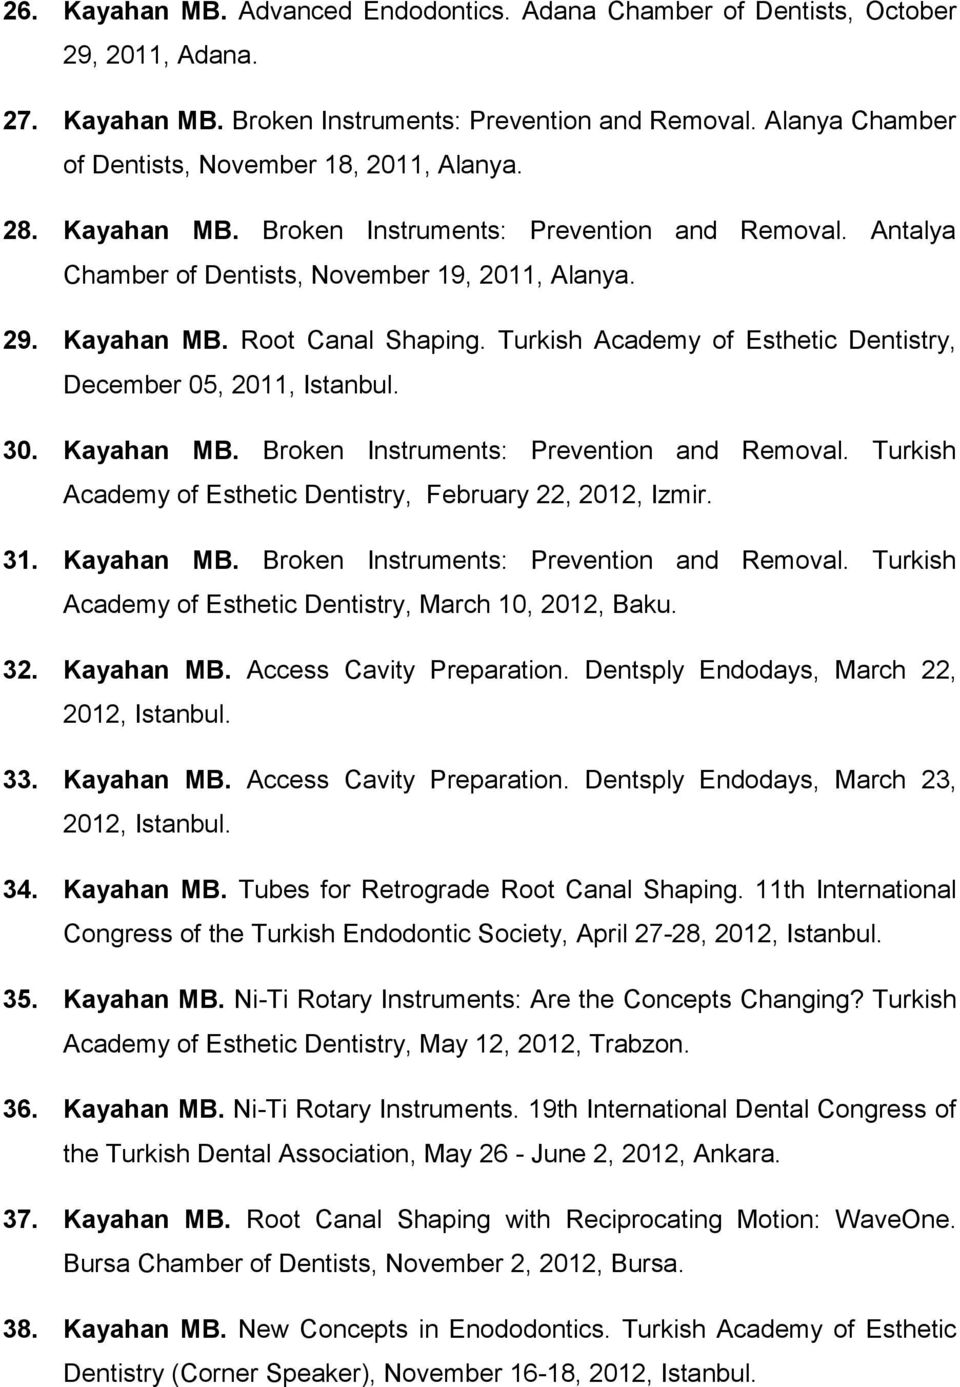 Turkish Academy of Esthetic Dentistry, December 05, 2011, Istanbul. 30. Kayahan MB. Broken Instruments: Prevention and Removal. Turkish Academy of Esthetic Dentistry, February 22, 2012, Izmir. 31.